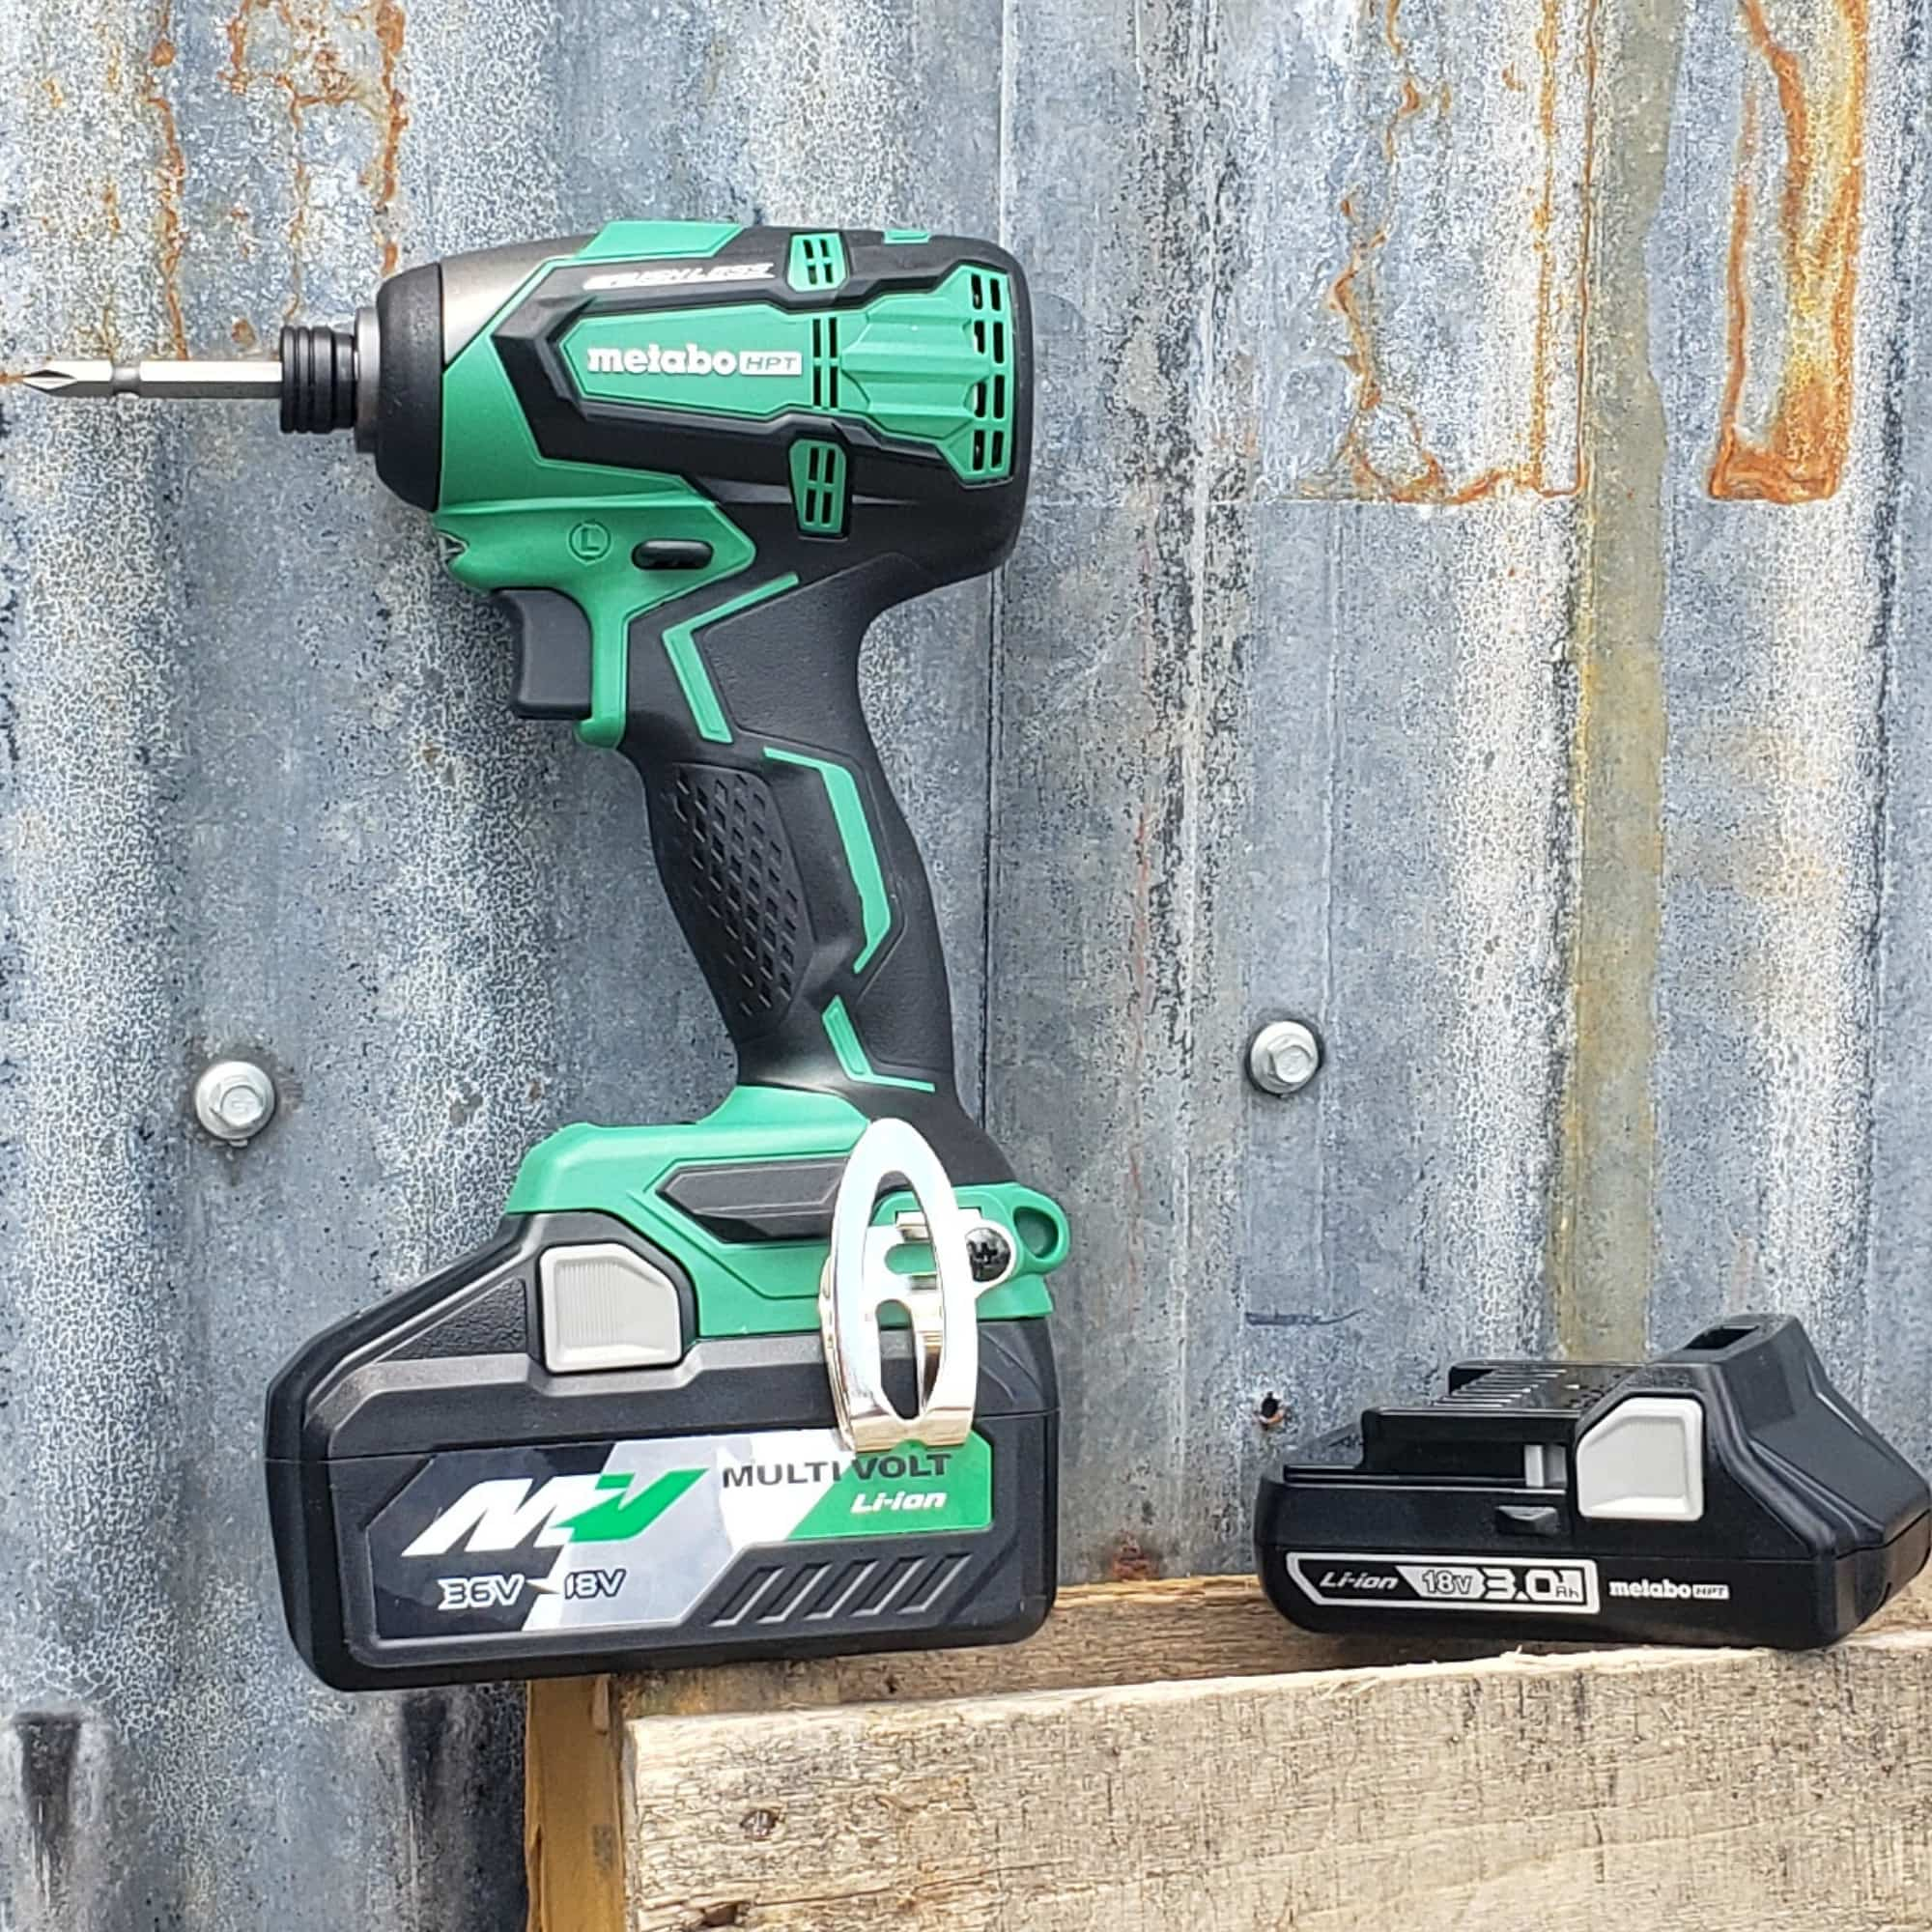 18V impact driver batteries